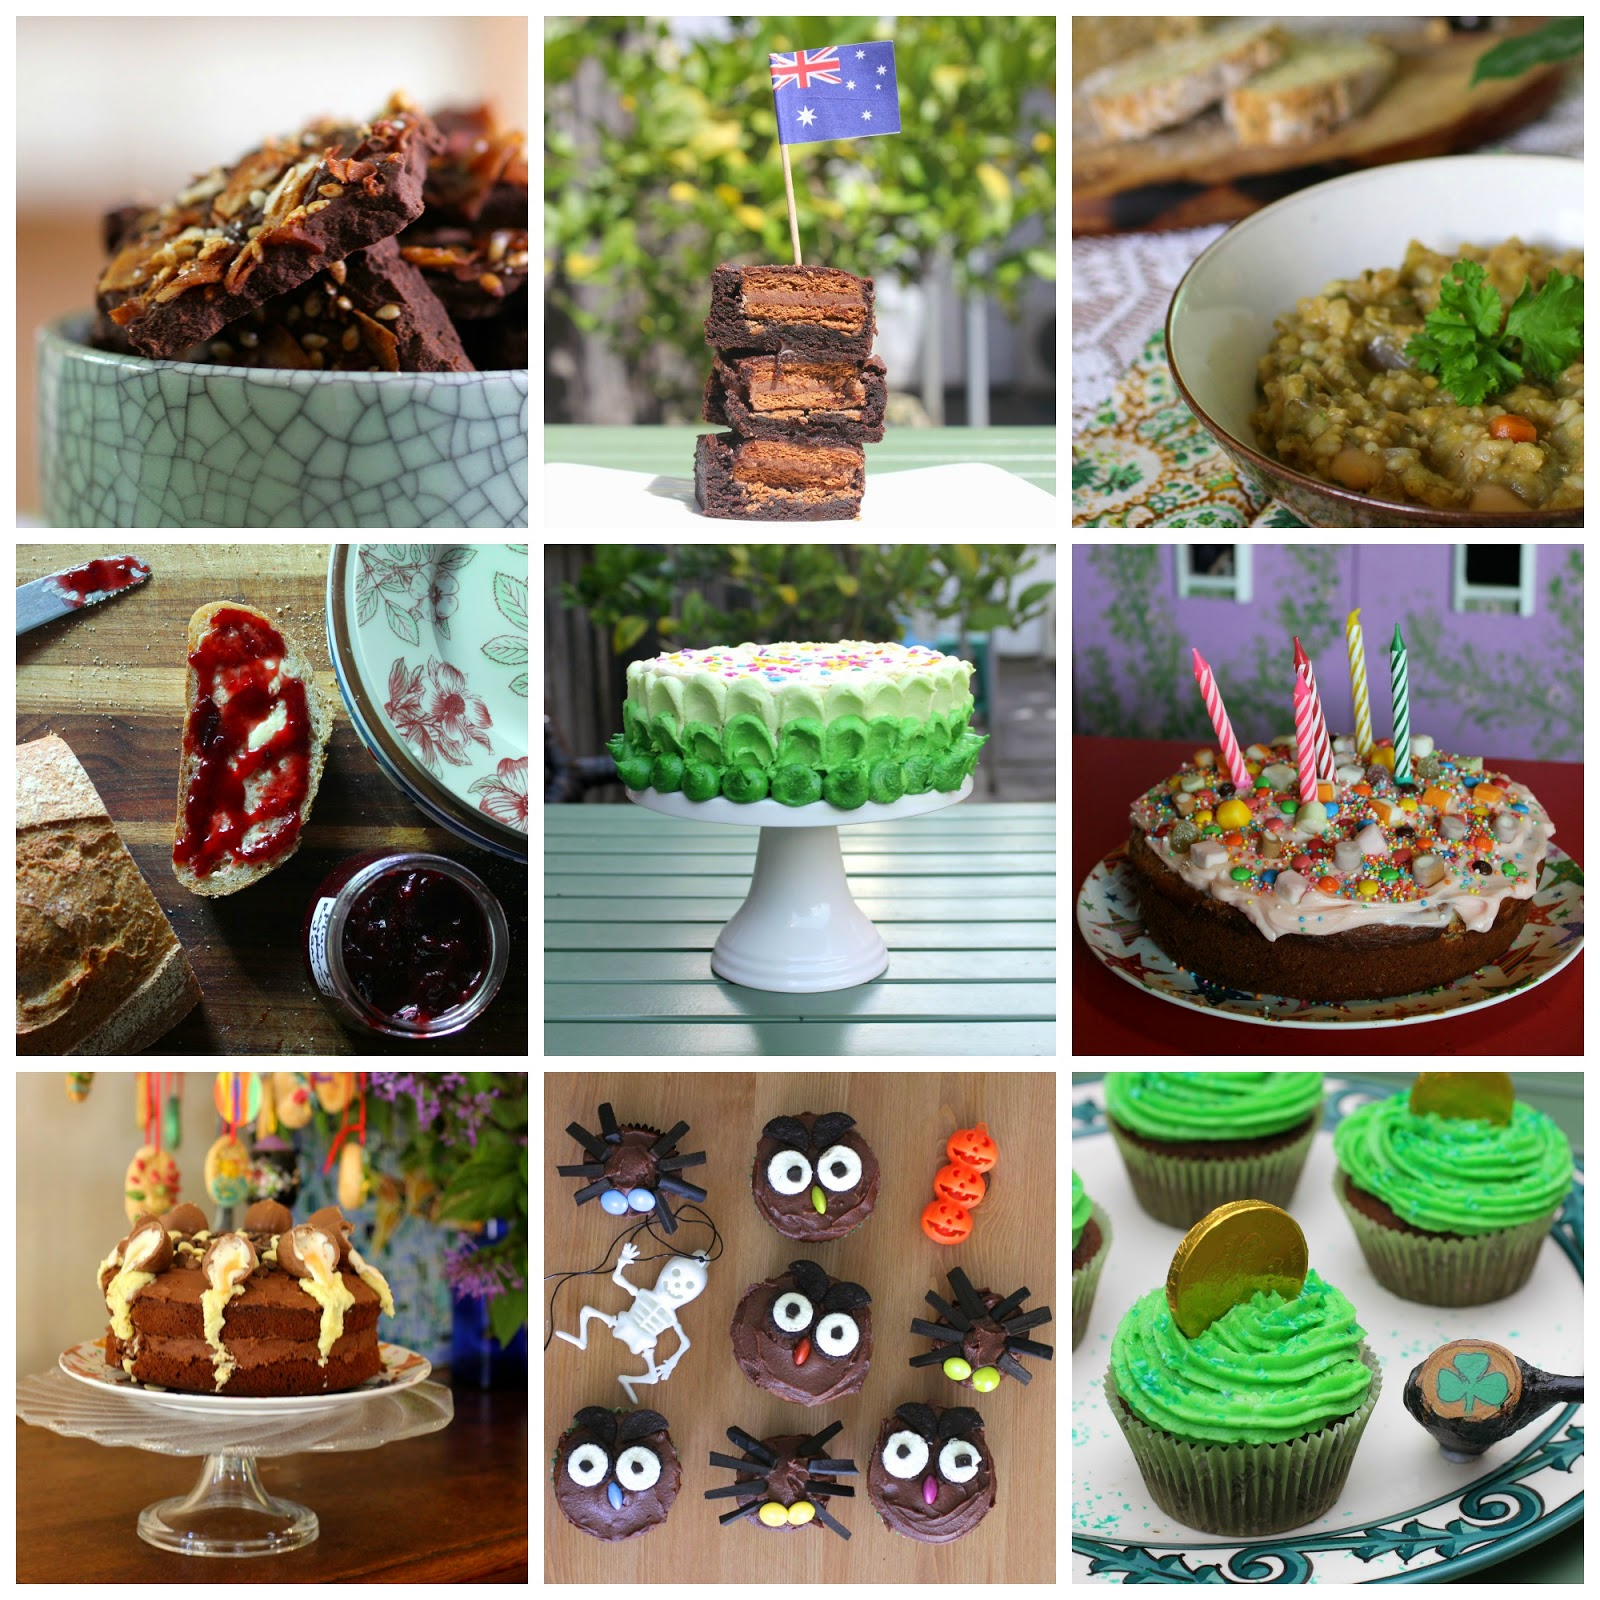 After Seven Years Of Blogging I Am Now Getting Photos Accepted By FoodGawker And Still Experiencing Some Rejection Have 29 Submissions